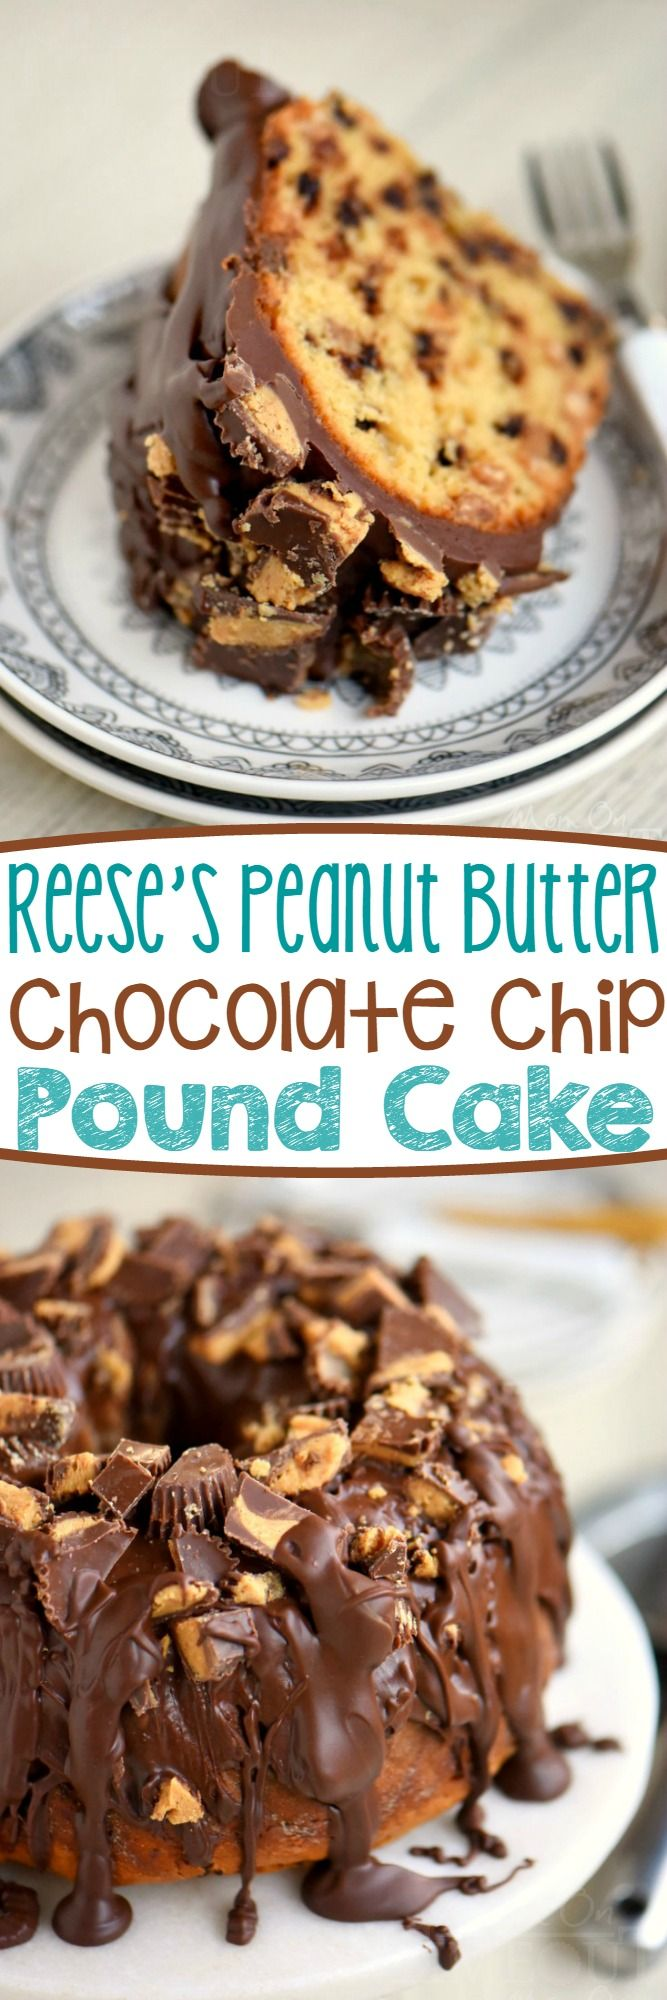 My new favorite cake! This amazingly easy and outrageously decadent Reese's Peanut Butter Chocolate Chip Pound Cake is a dream come true! So moist and delicious and topped with an incredible peanut butter chocolate glaze - no one will be able to resist!: